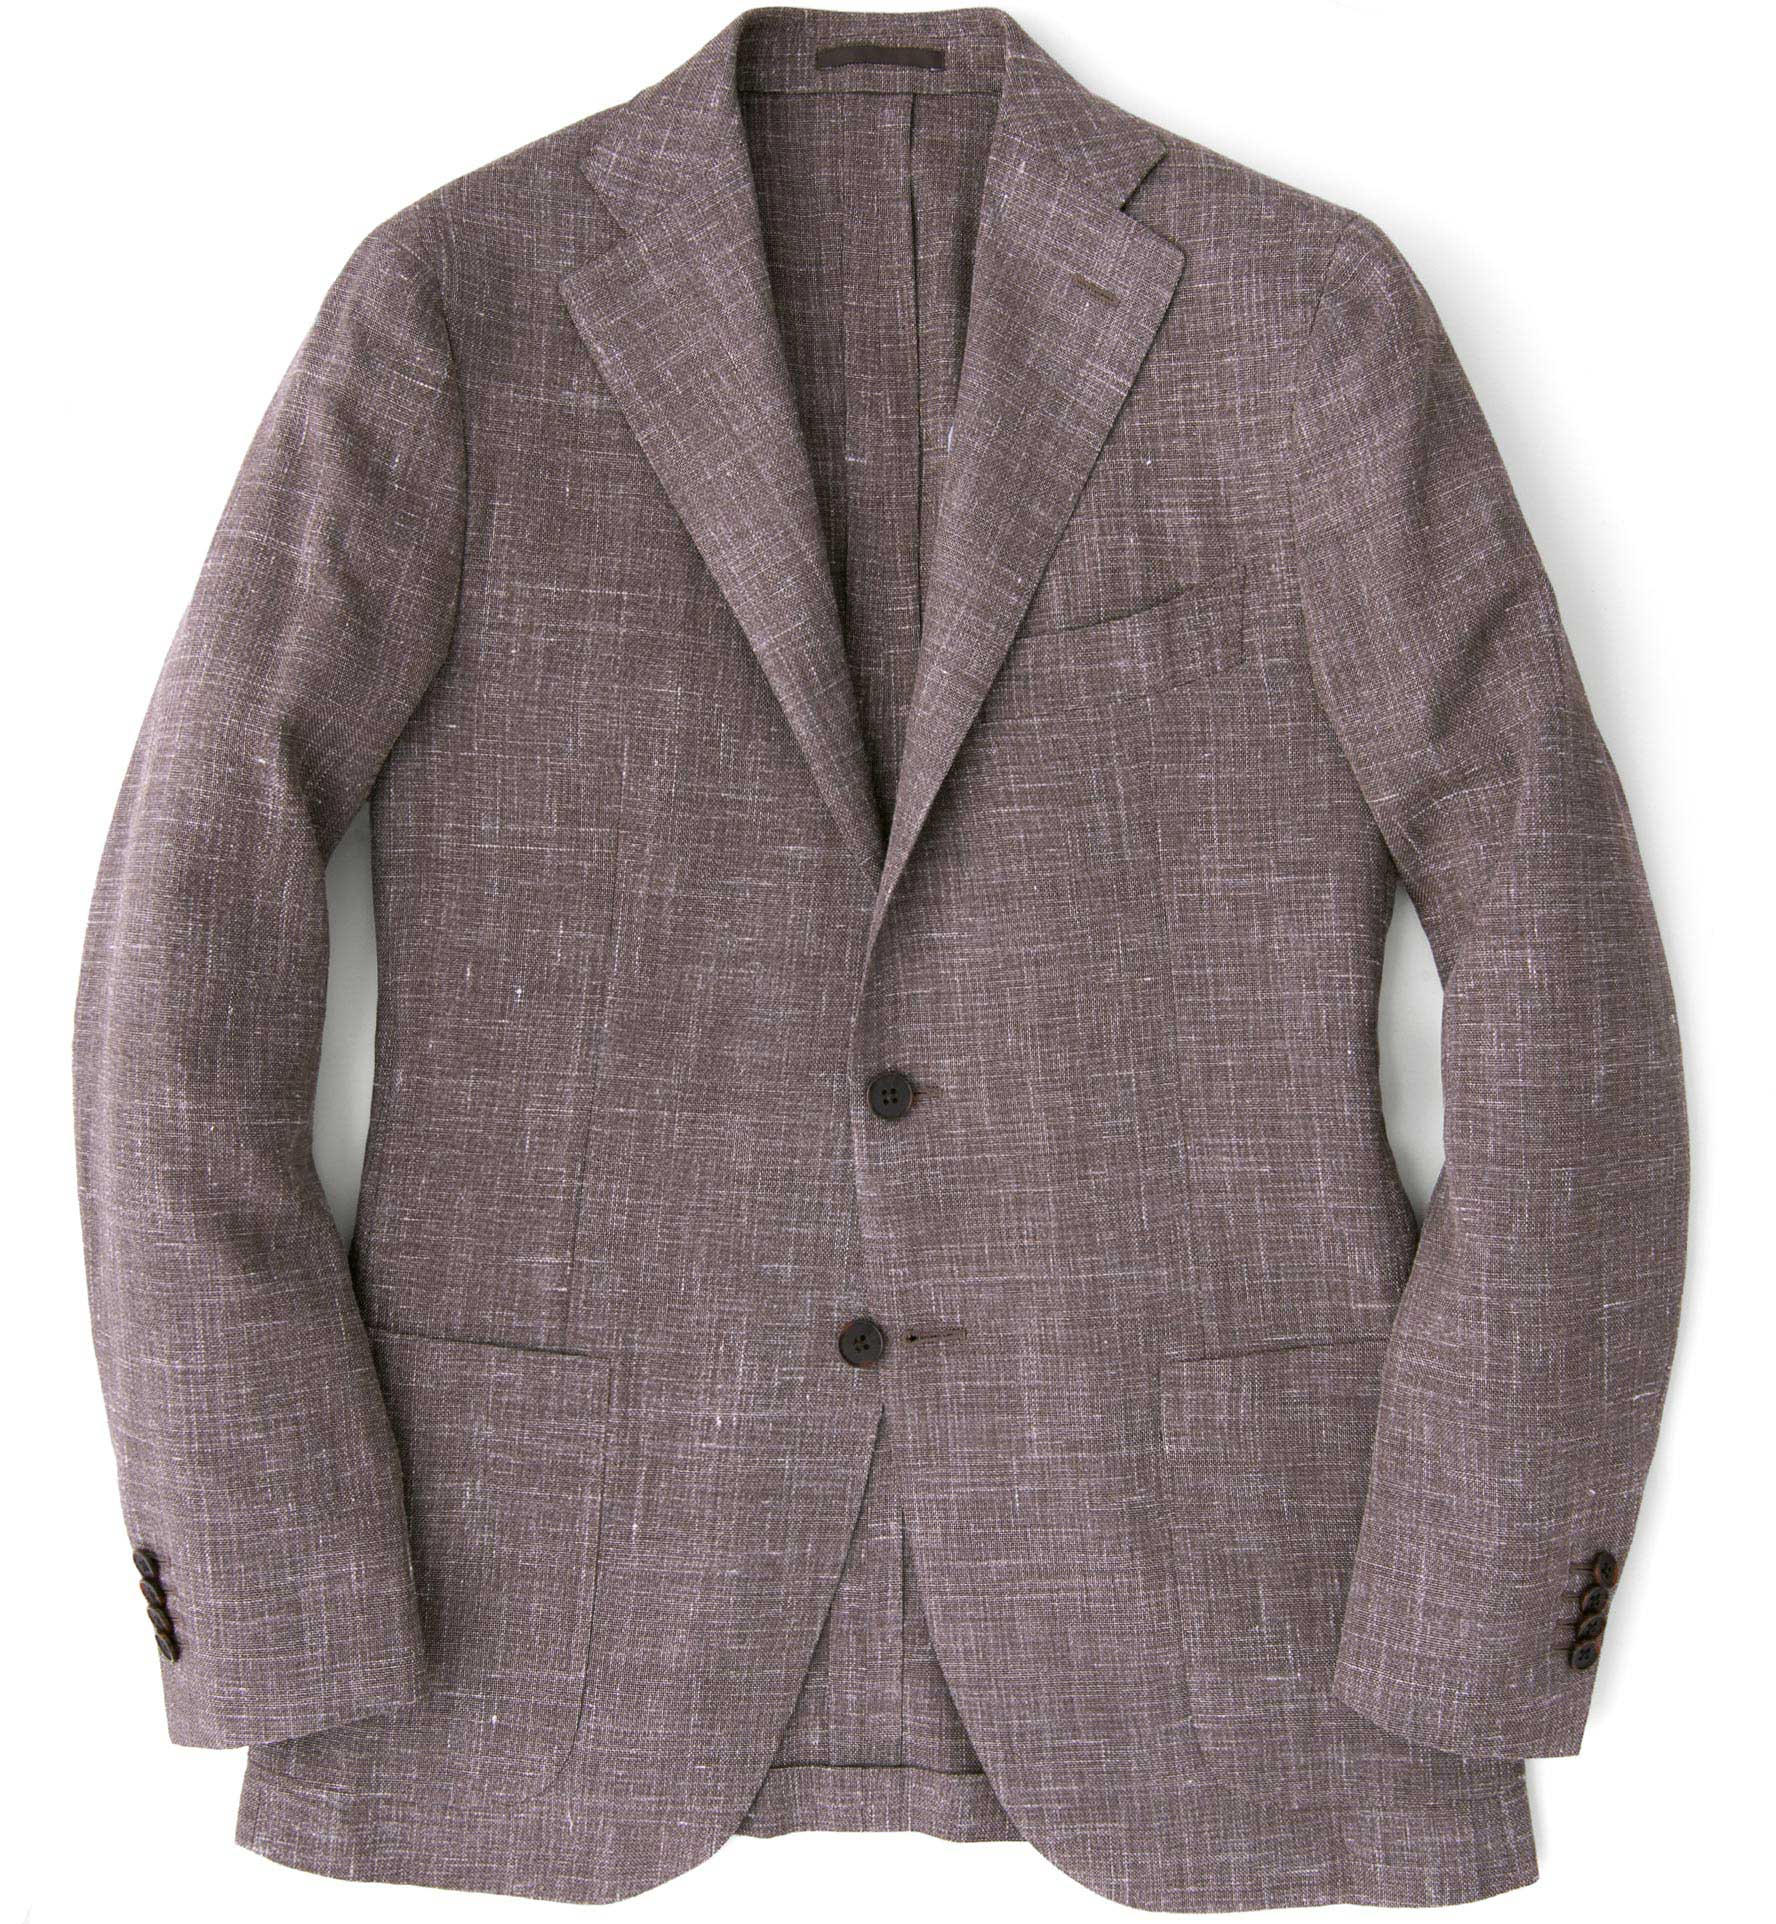 Zoom Image of Hudson Mocha Slub Weave Jacket